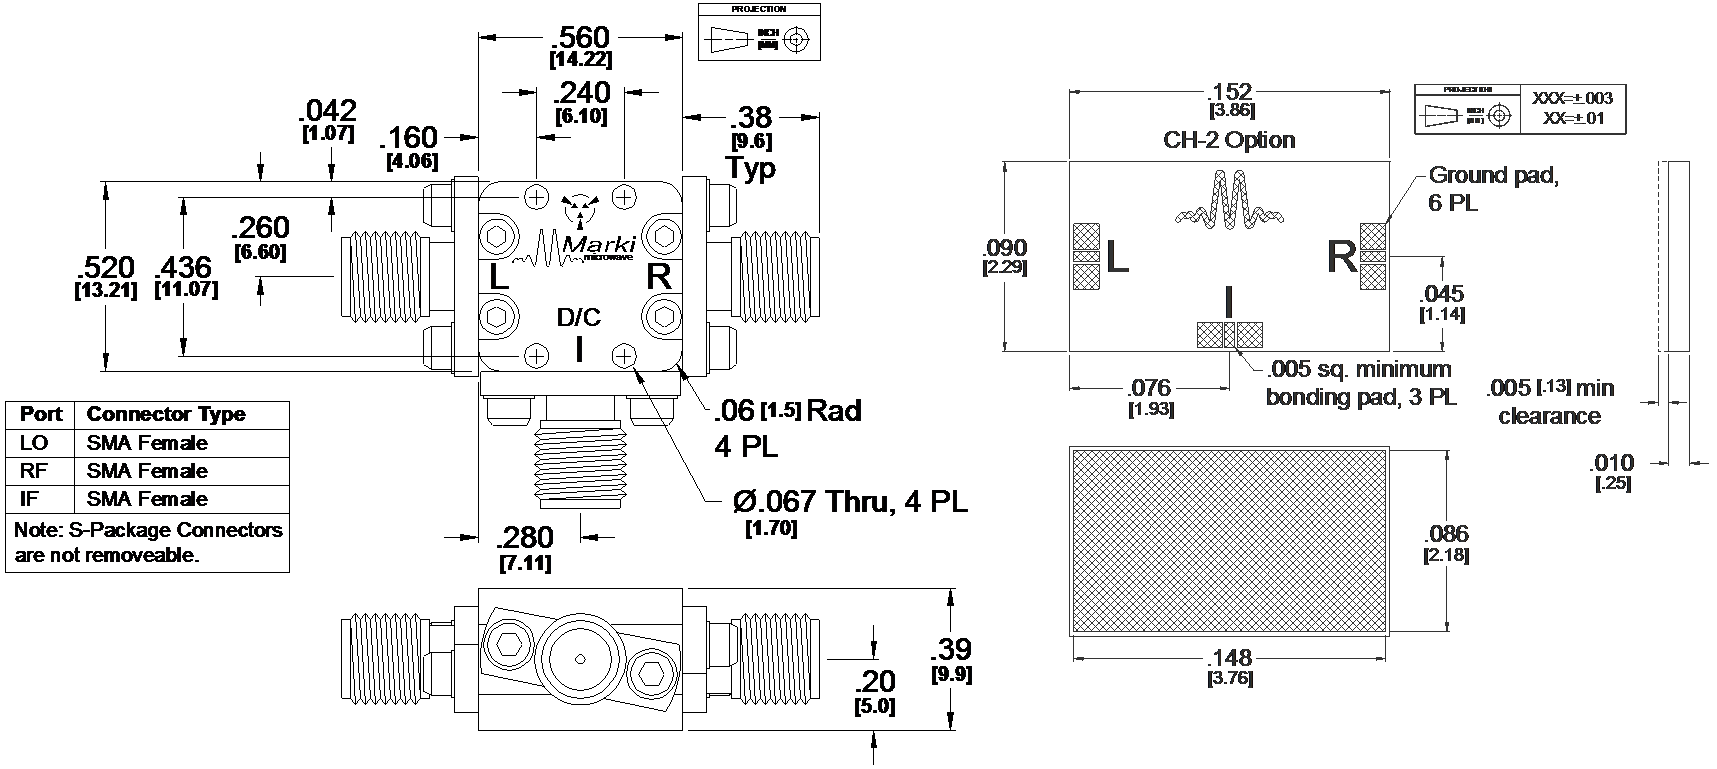 ML1-0220 Mixer Package Diagram